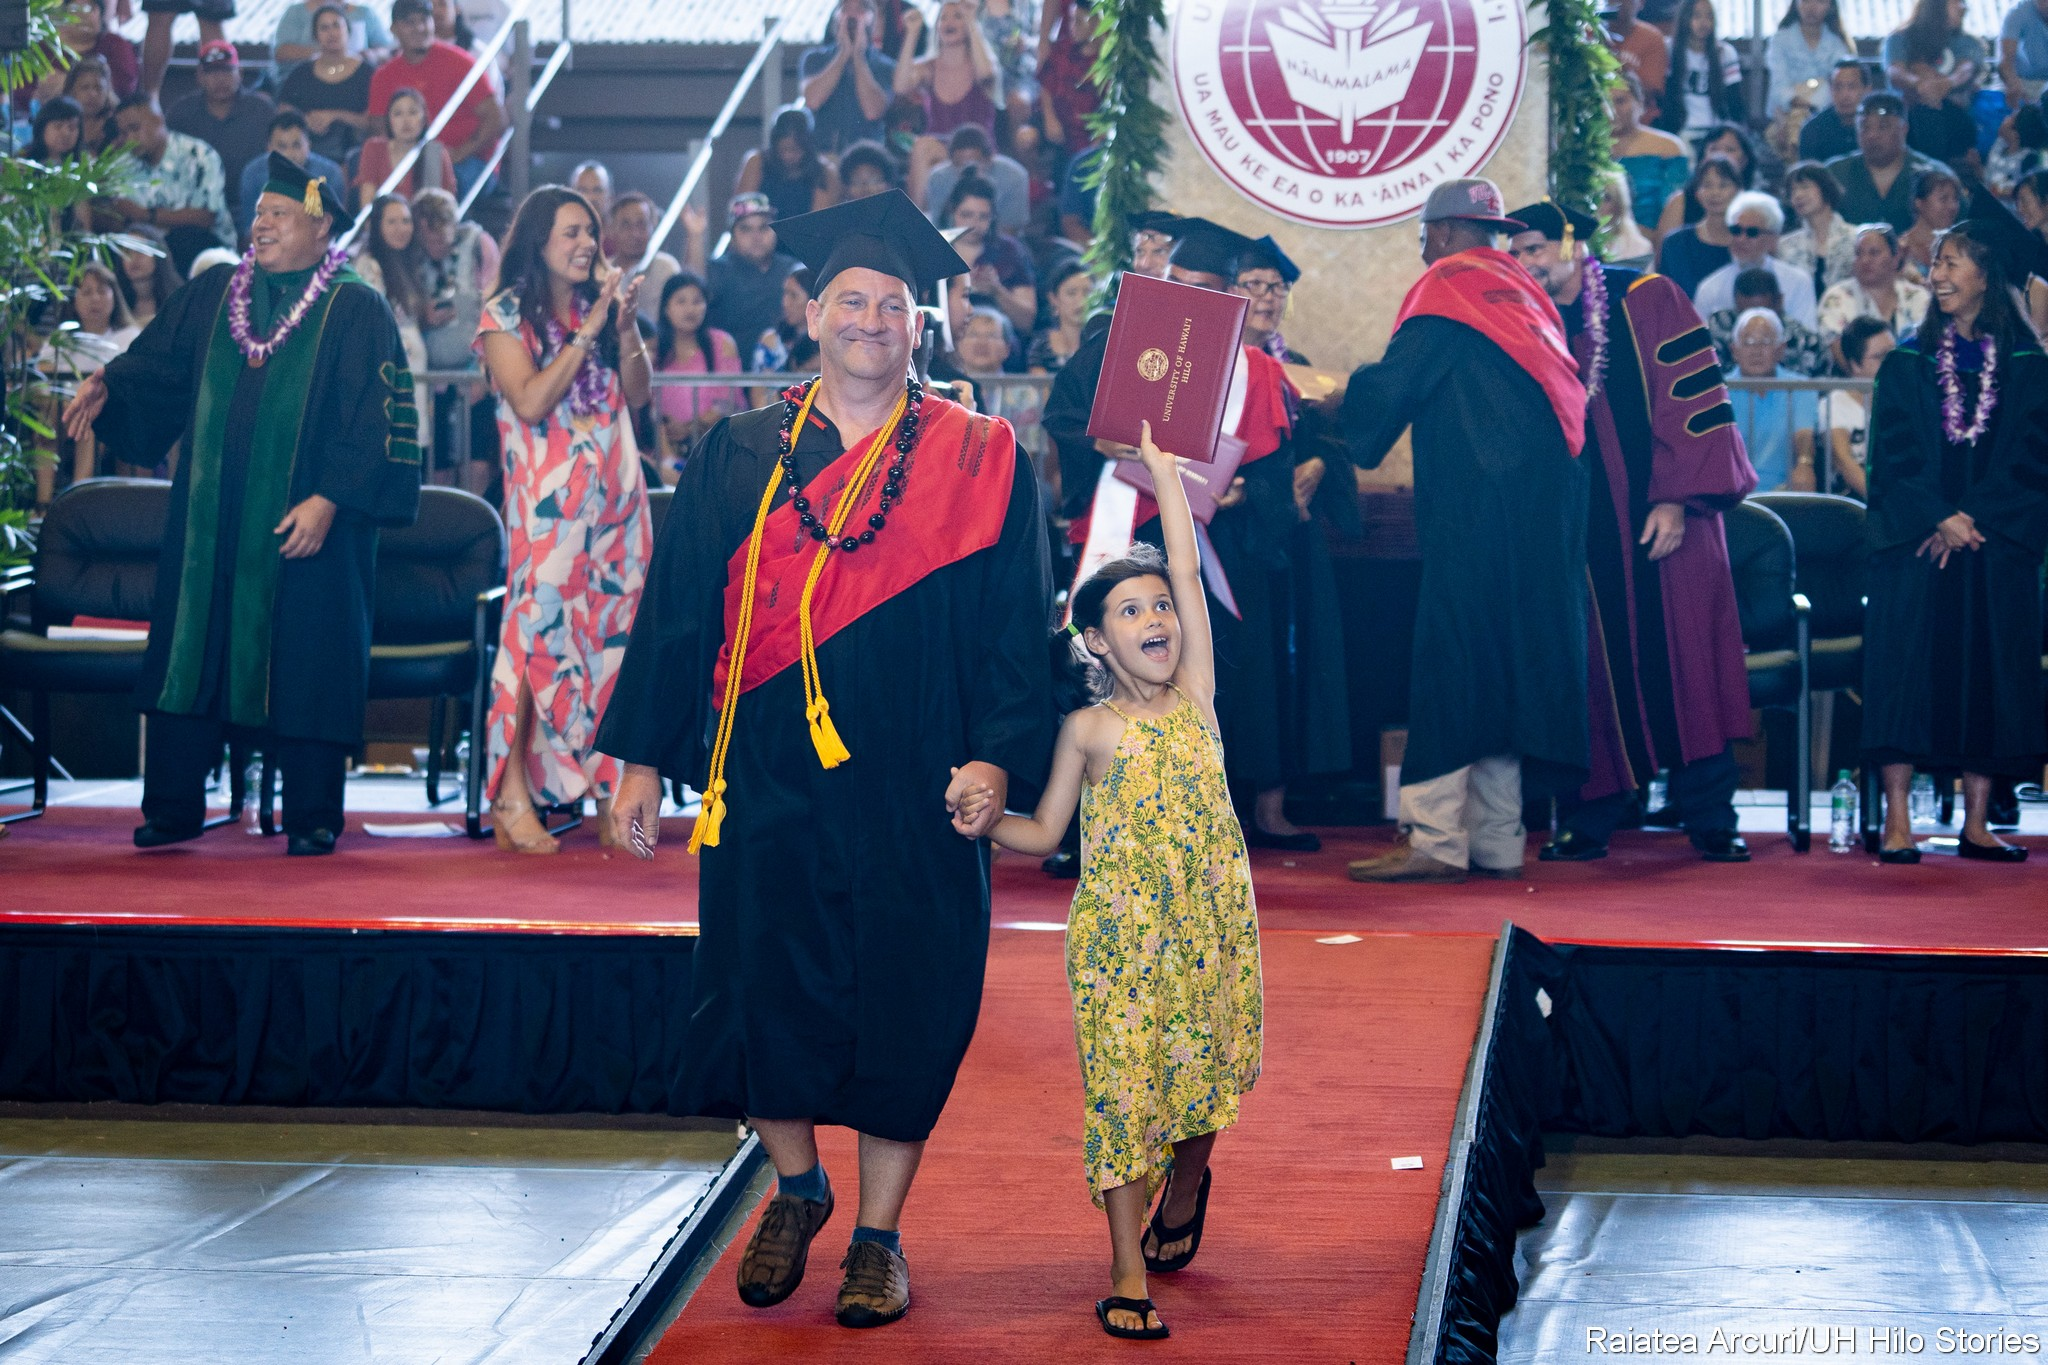 Female graduate leaving dais with young girl holding diploma high overhead.